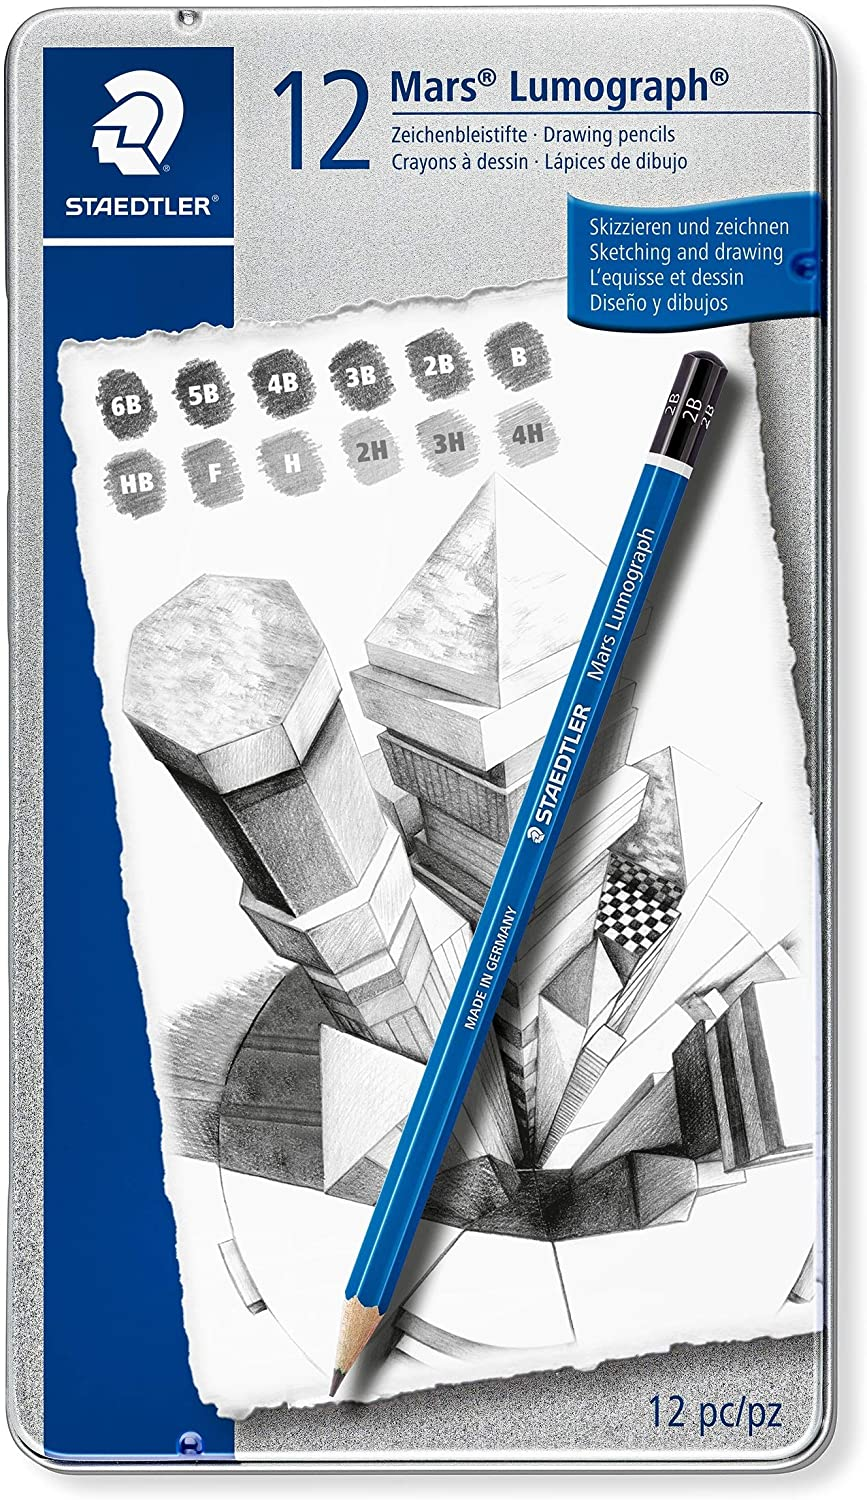 Staedtler Mars Lumograph Art Drawing Pencils, 12 Pack Graphite Pencils in Metal Case